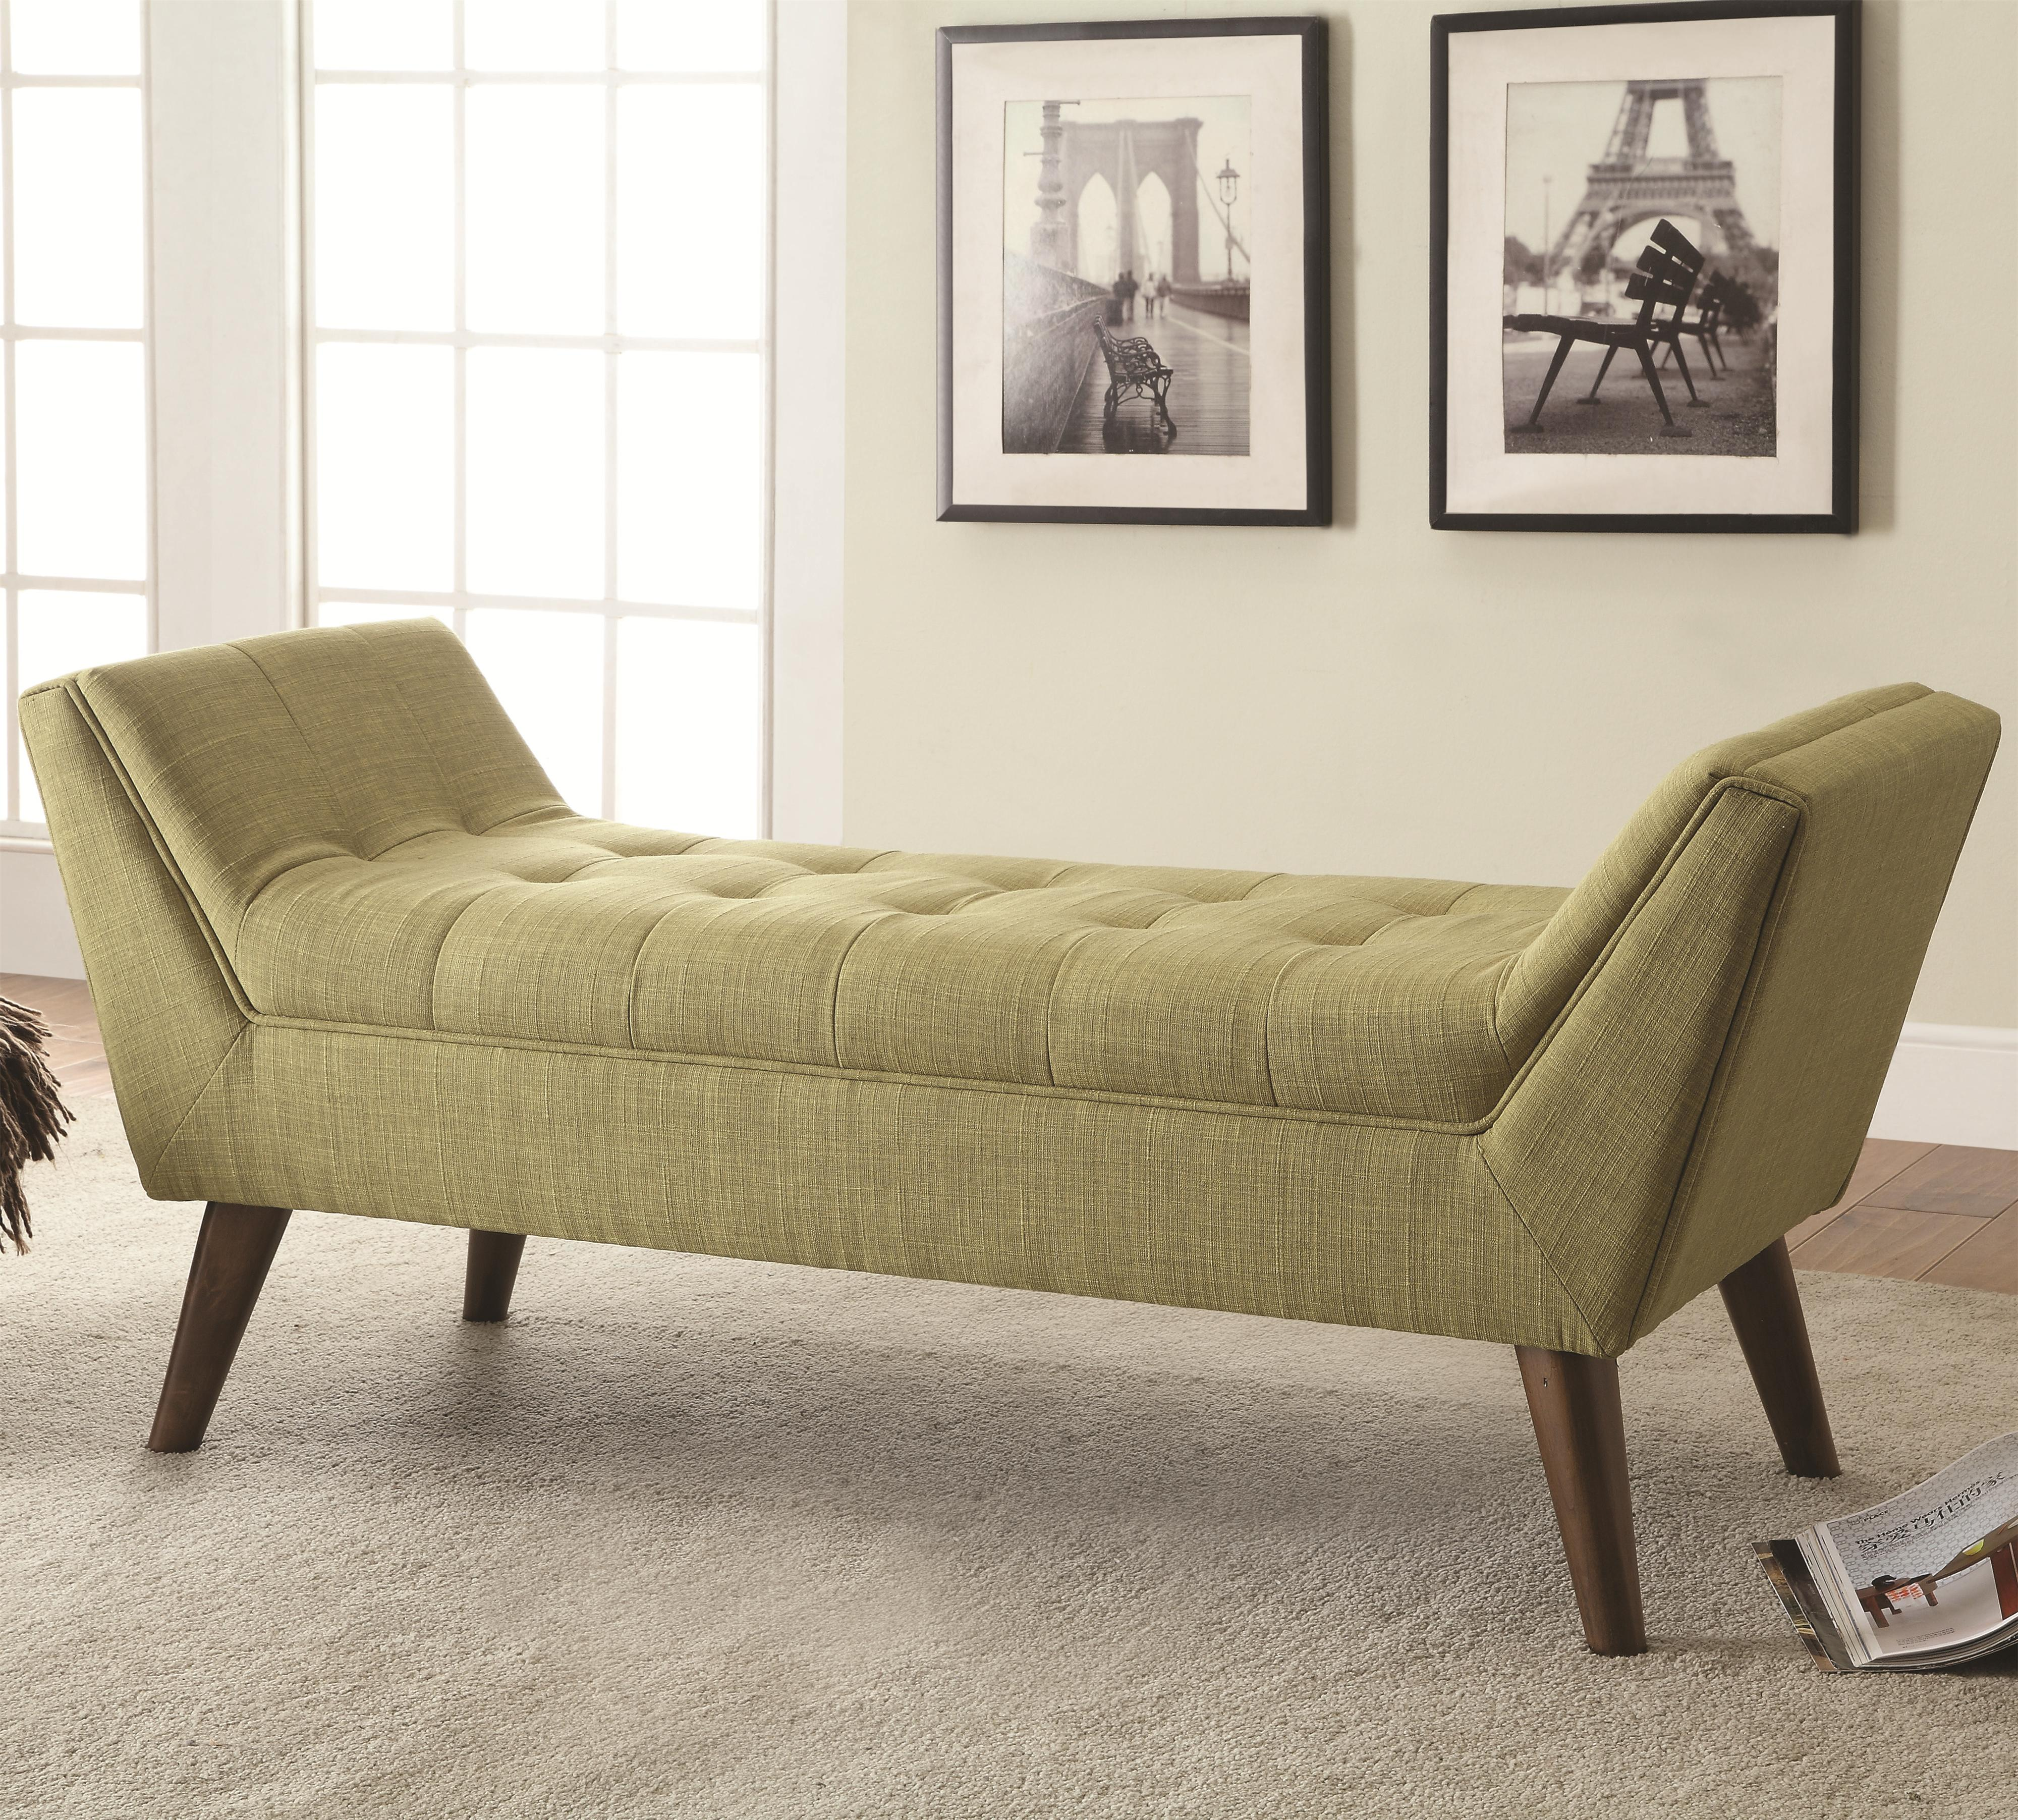 Modern Furniture Bench benches mid-century modern upholstered accent bench | quality